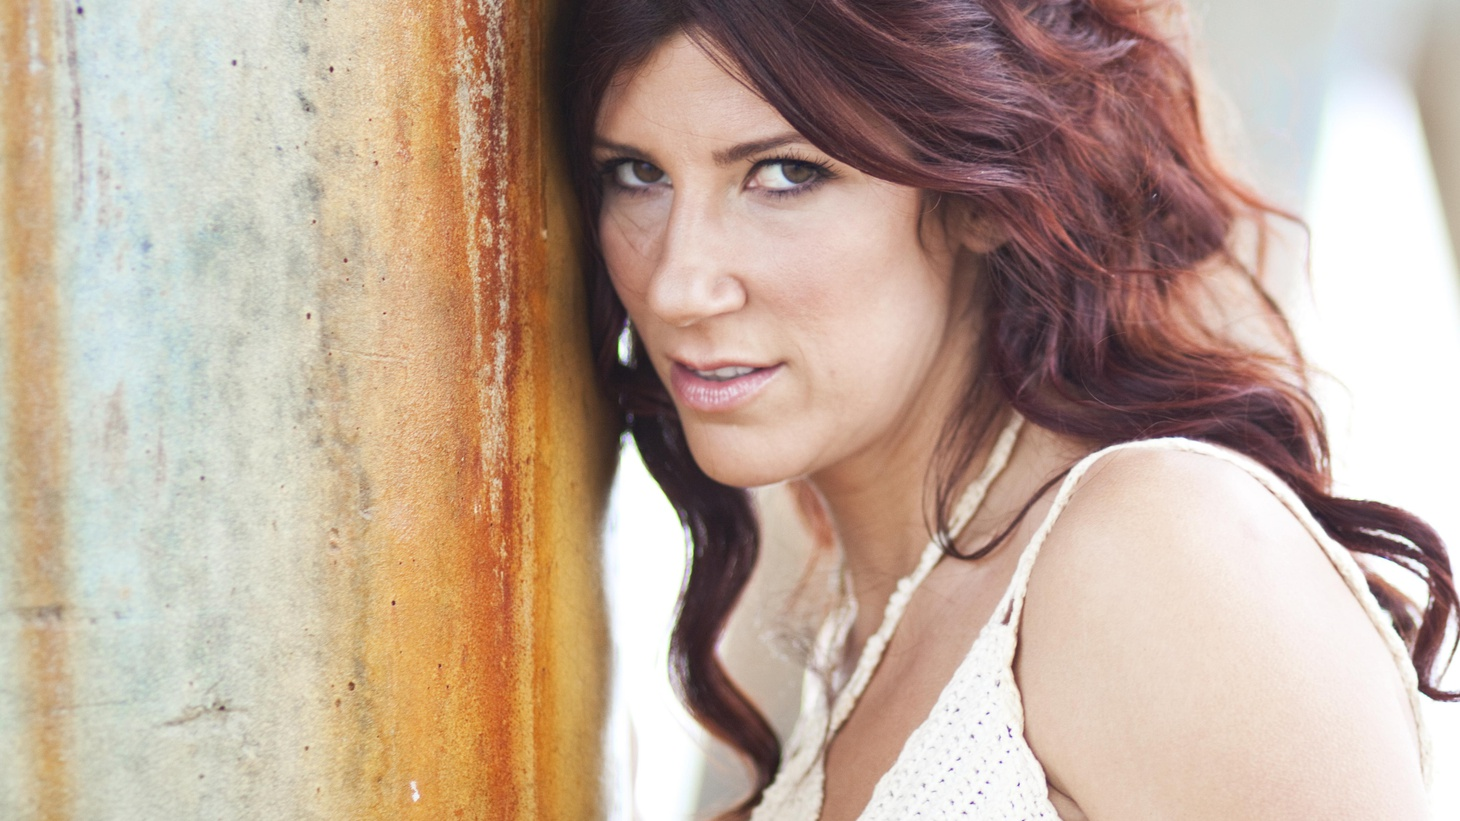 Shana Halligan's sultry vocals mix with jazzy beats on her new EP, released on a label founded by Thievery Corporation's Rob Garza.